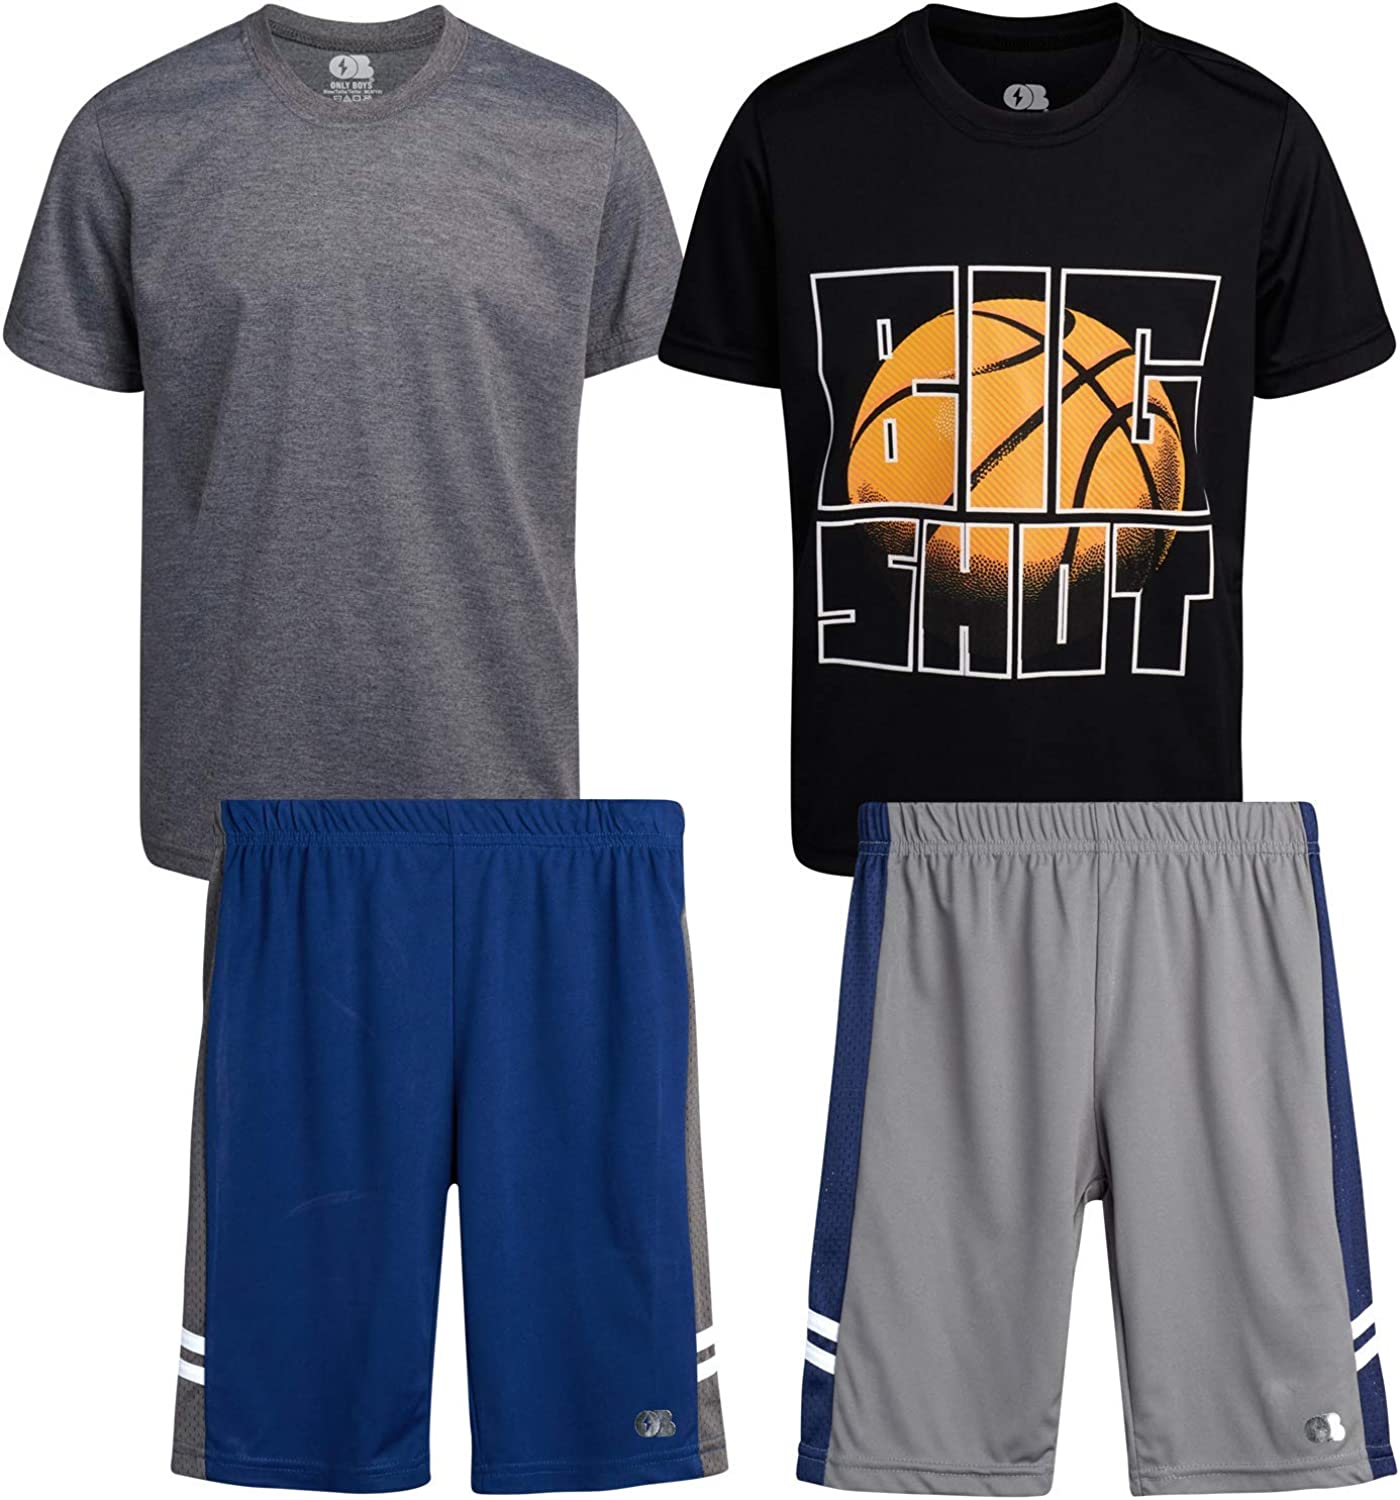 ONLY BOYS 4-Piece Performance Sports Chicago Mall and Set NEW before selling Short T-Shirt